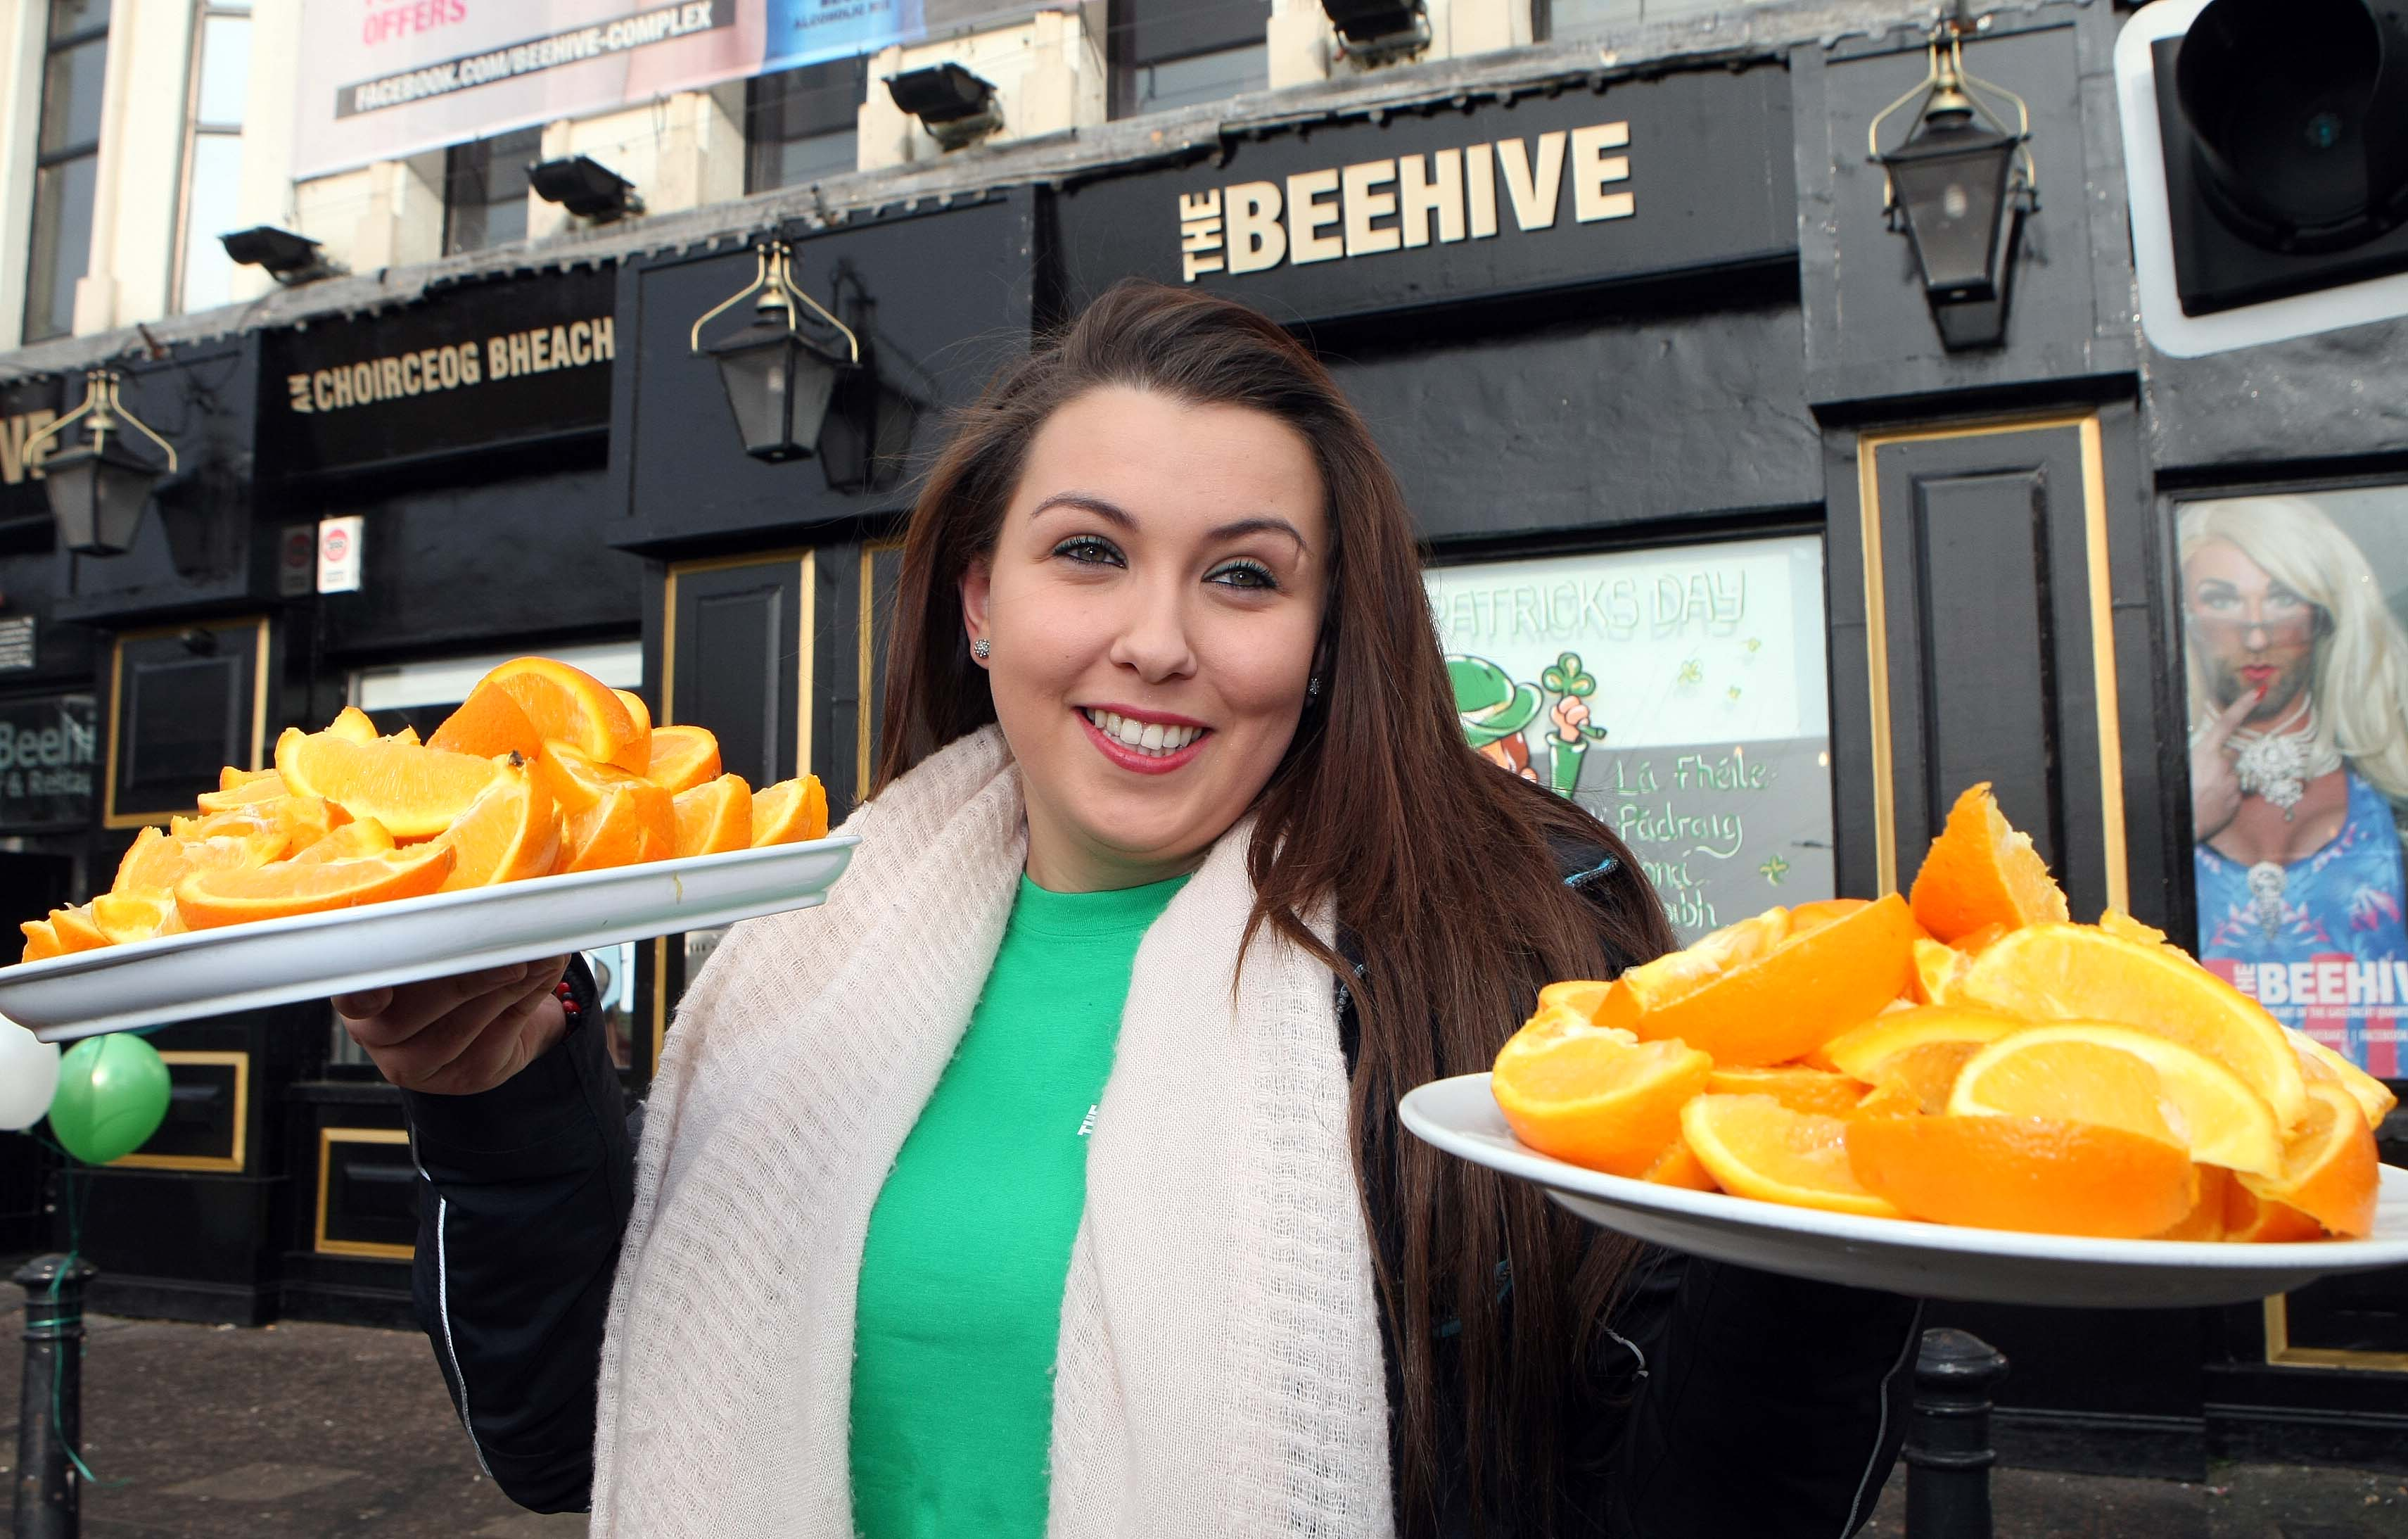 Tuesday 17-3-2015St Patrick's DaySPAR Craic 10k BelfastStephanie Harper of the Beehive has the refreshments readySparCraic10K170315FP005